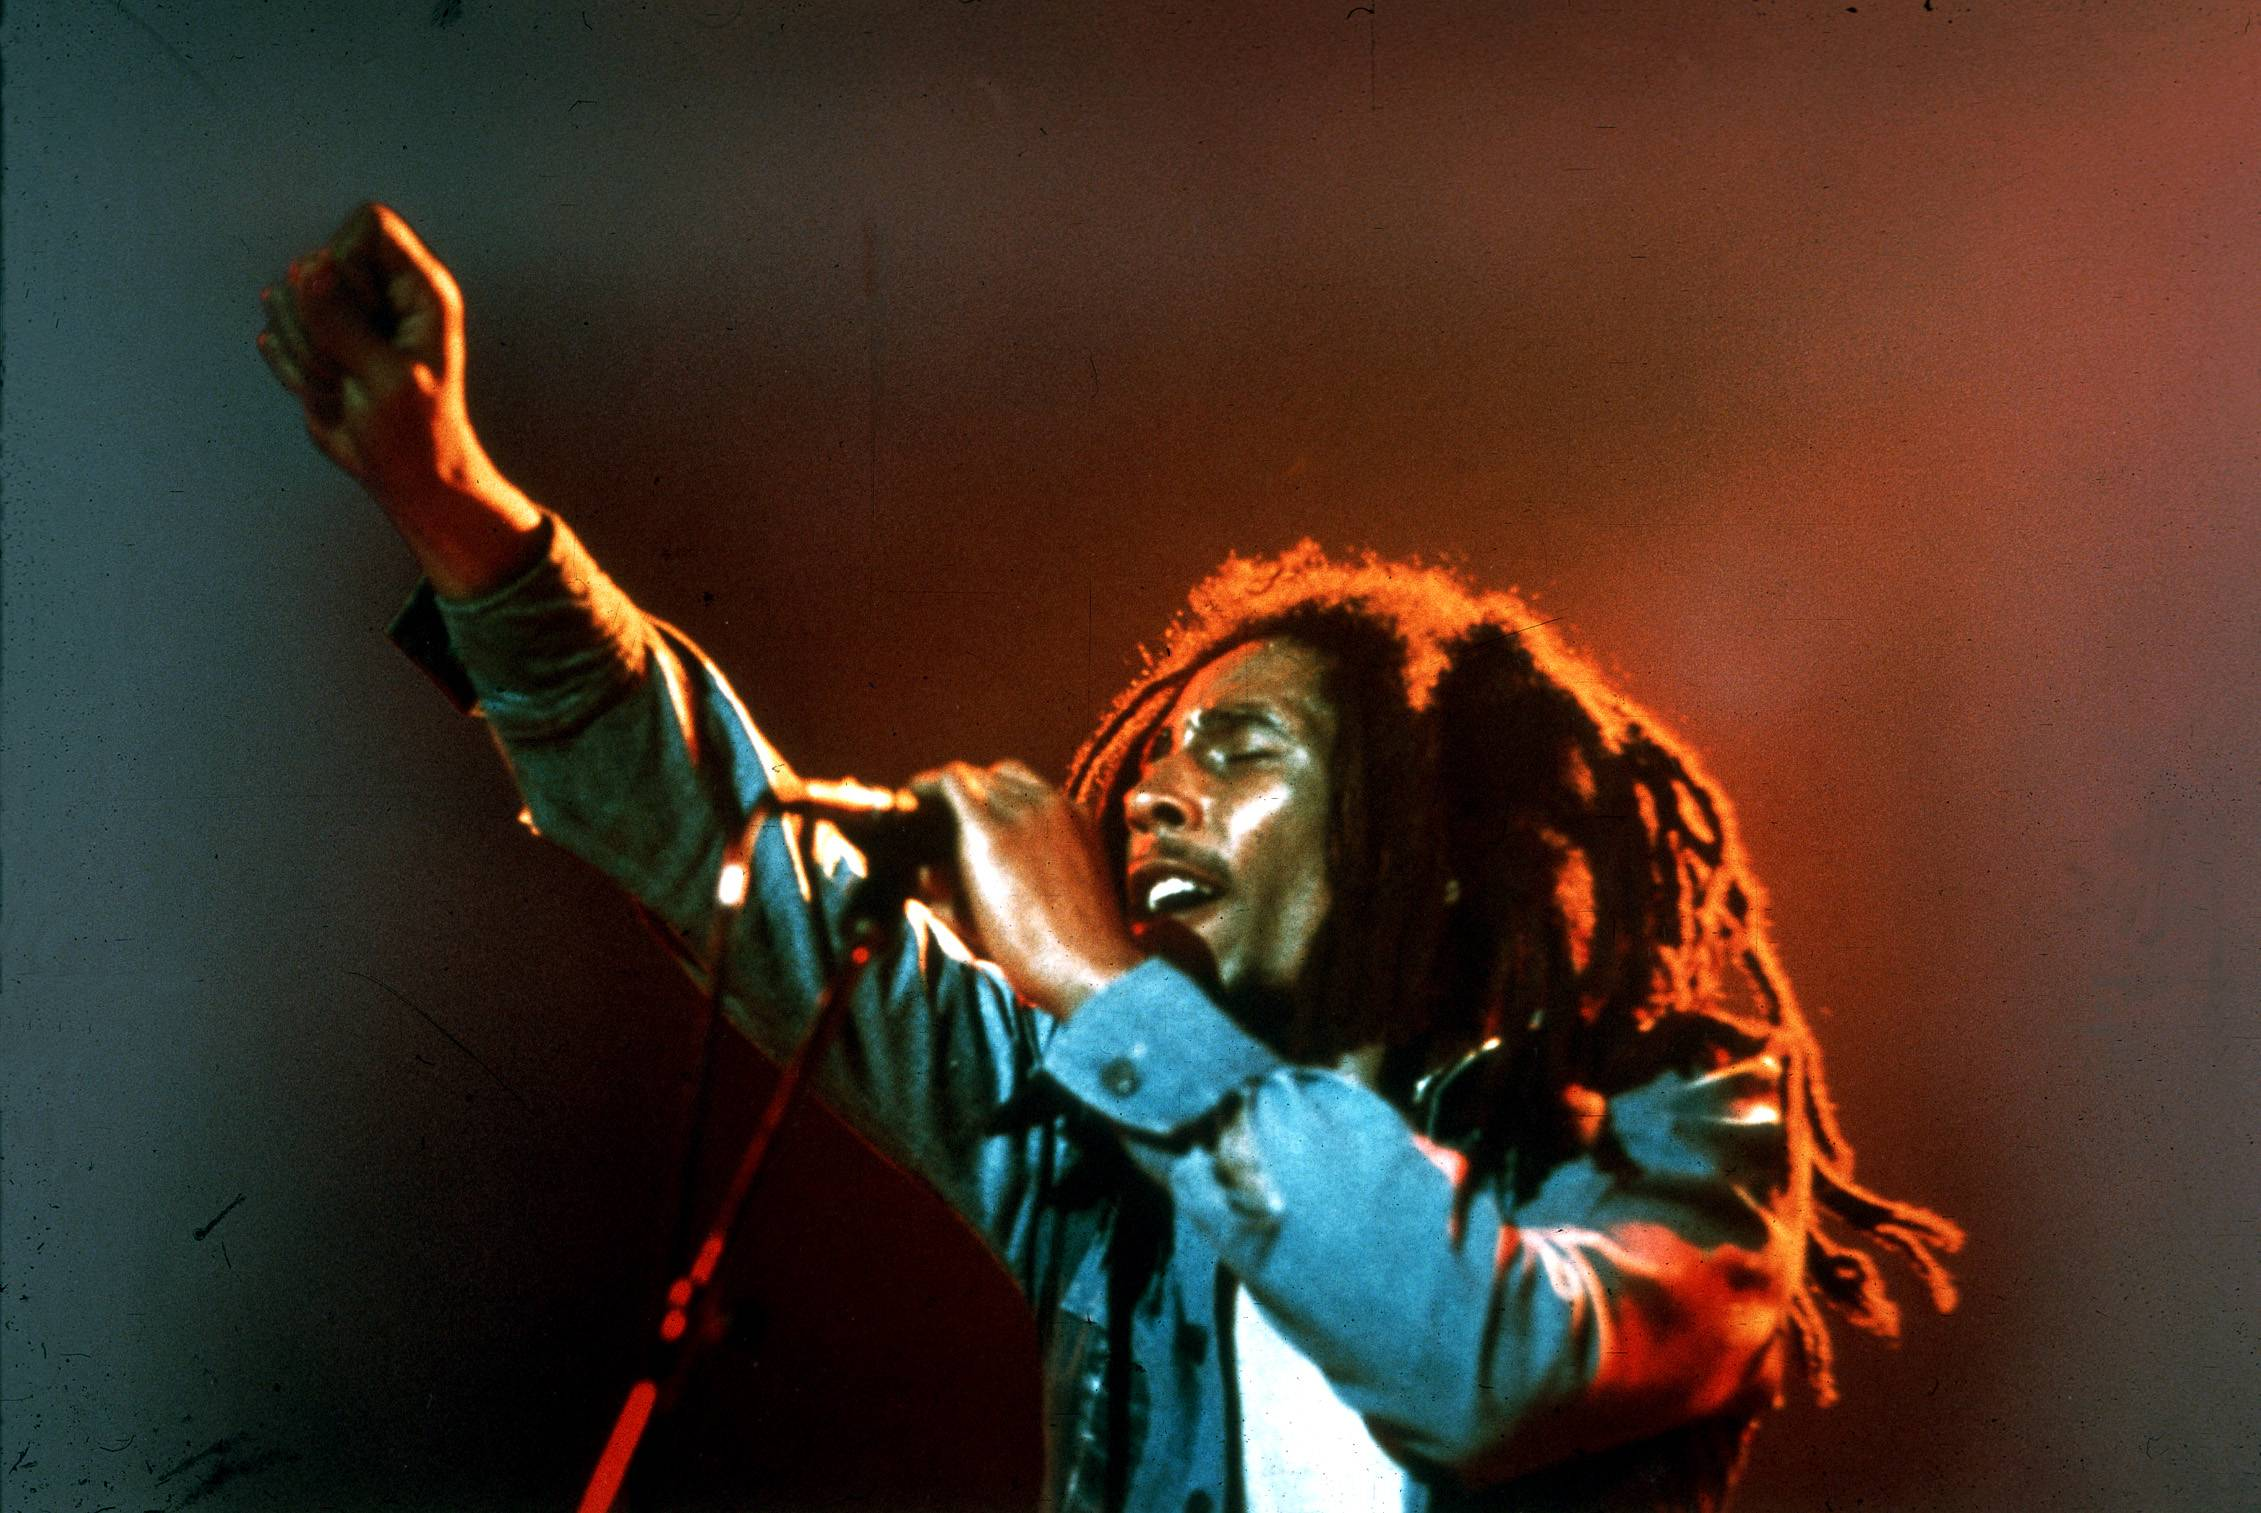 /content/dam/betcom/images/Topic Pages/Music/070711-music-topic-bob-marley.jpg